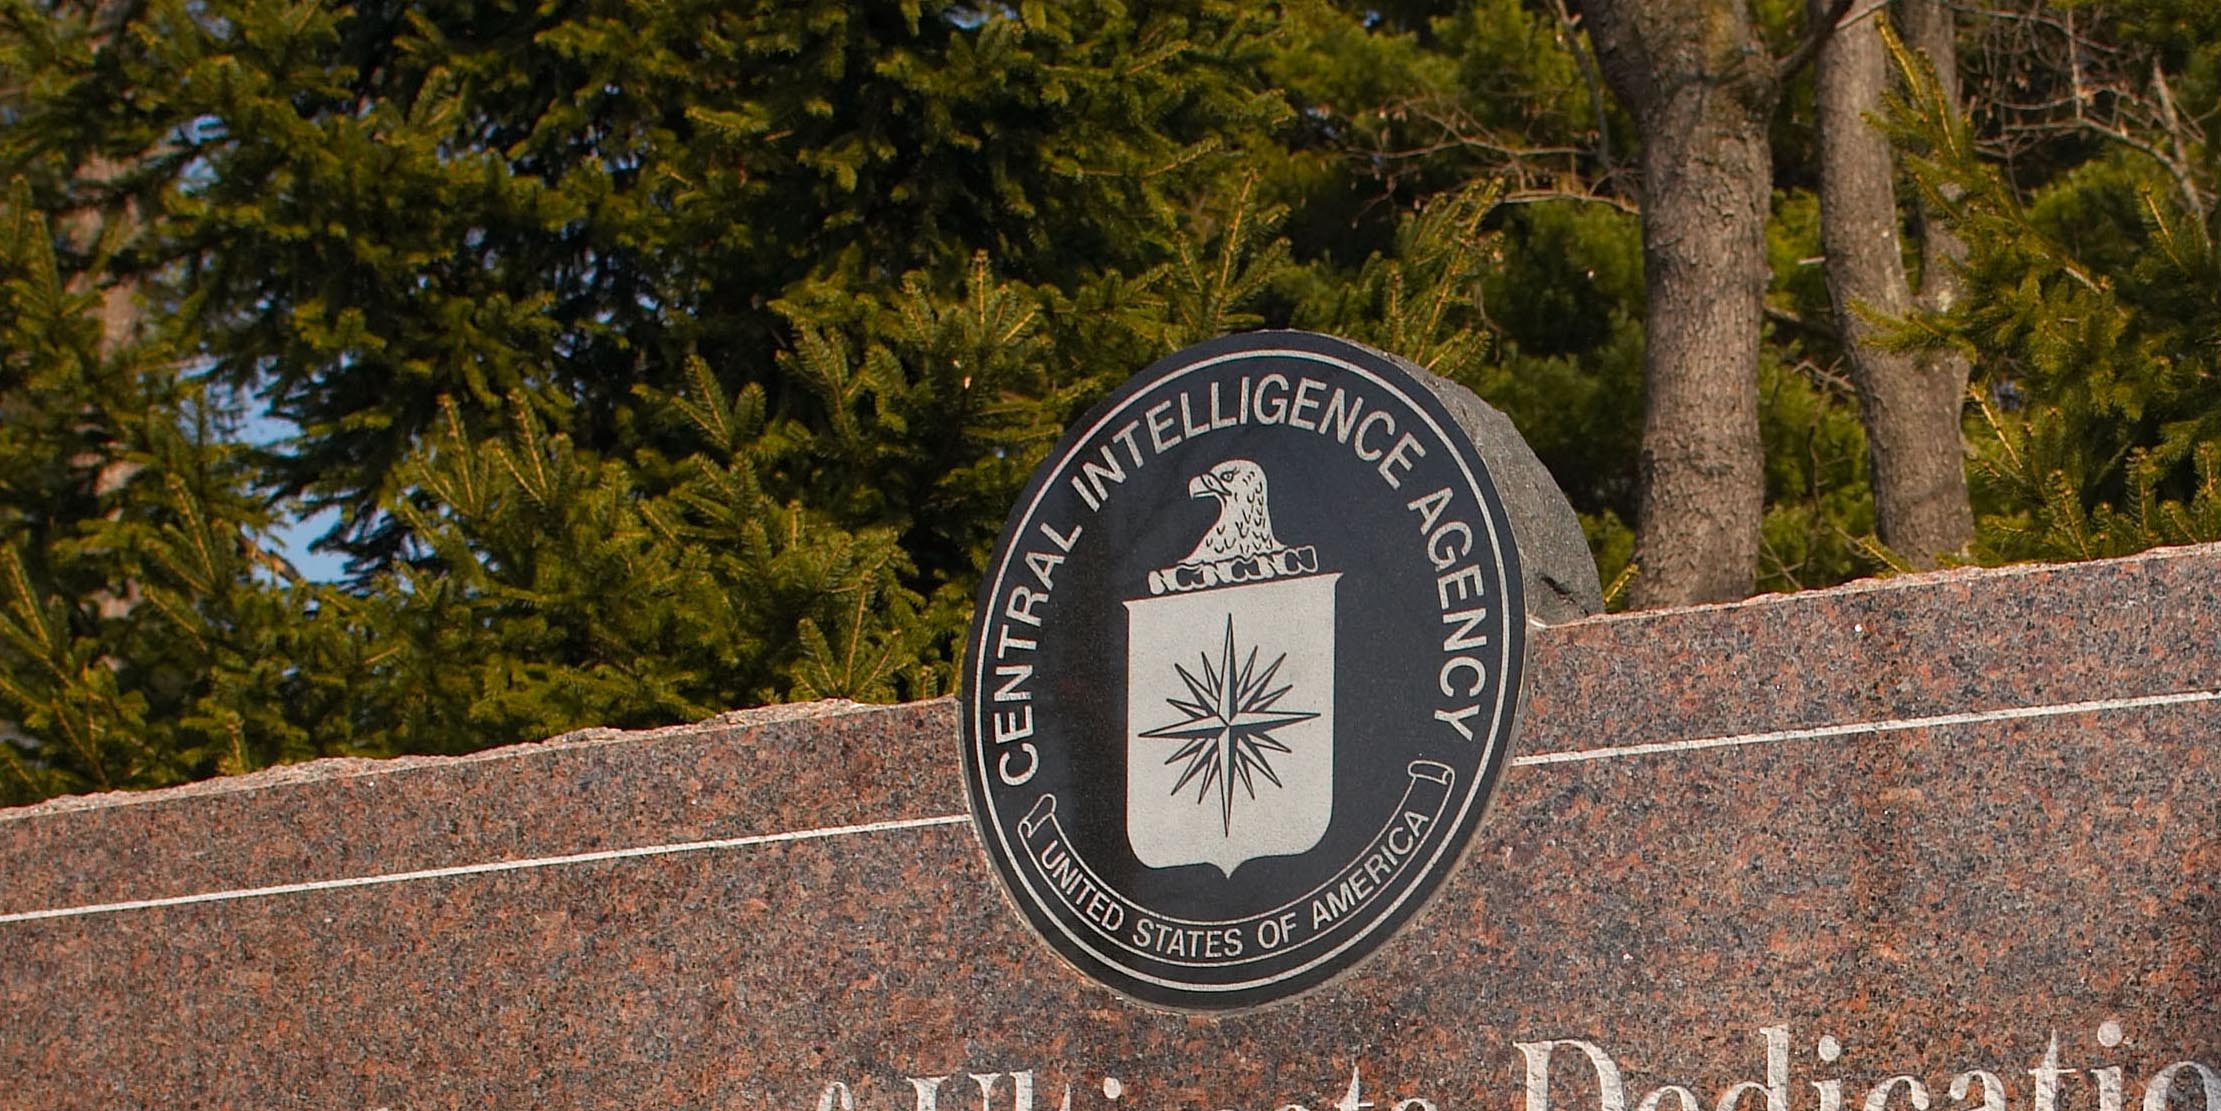 A former CIA employee who authorities say leaked a trove of data to WikiLeaks that came to be known as 'Vault 7' has been indicted by a federal grand jury.